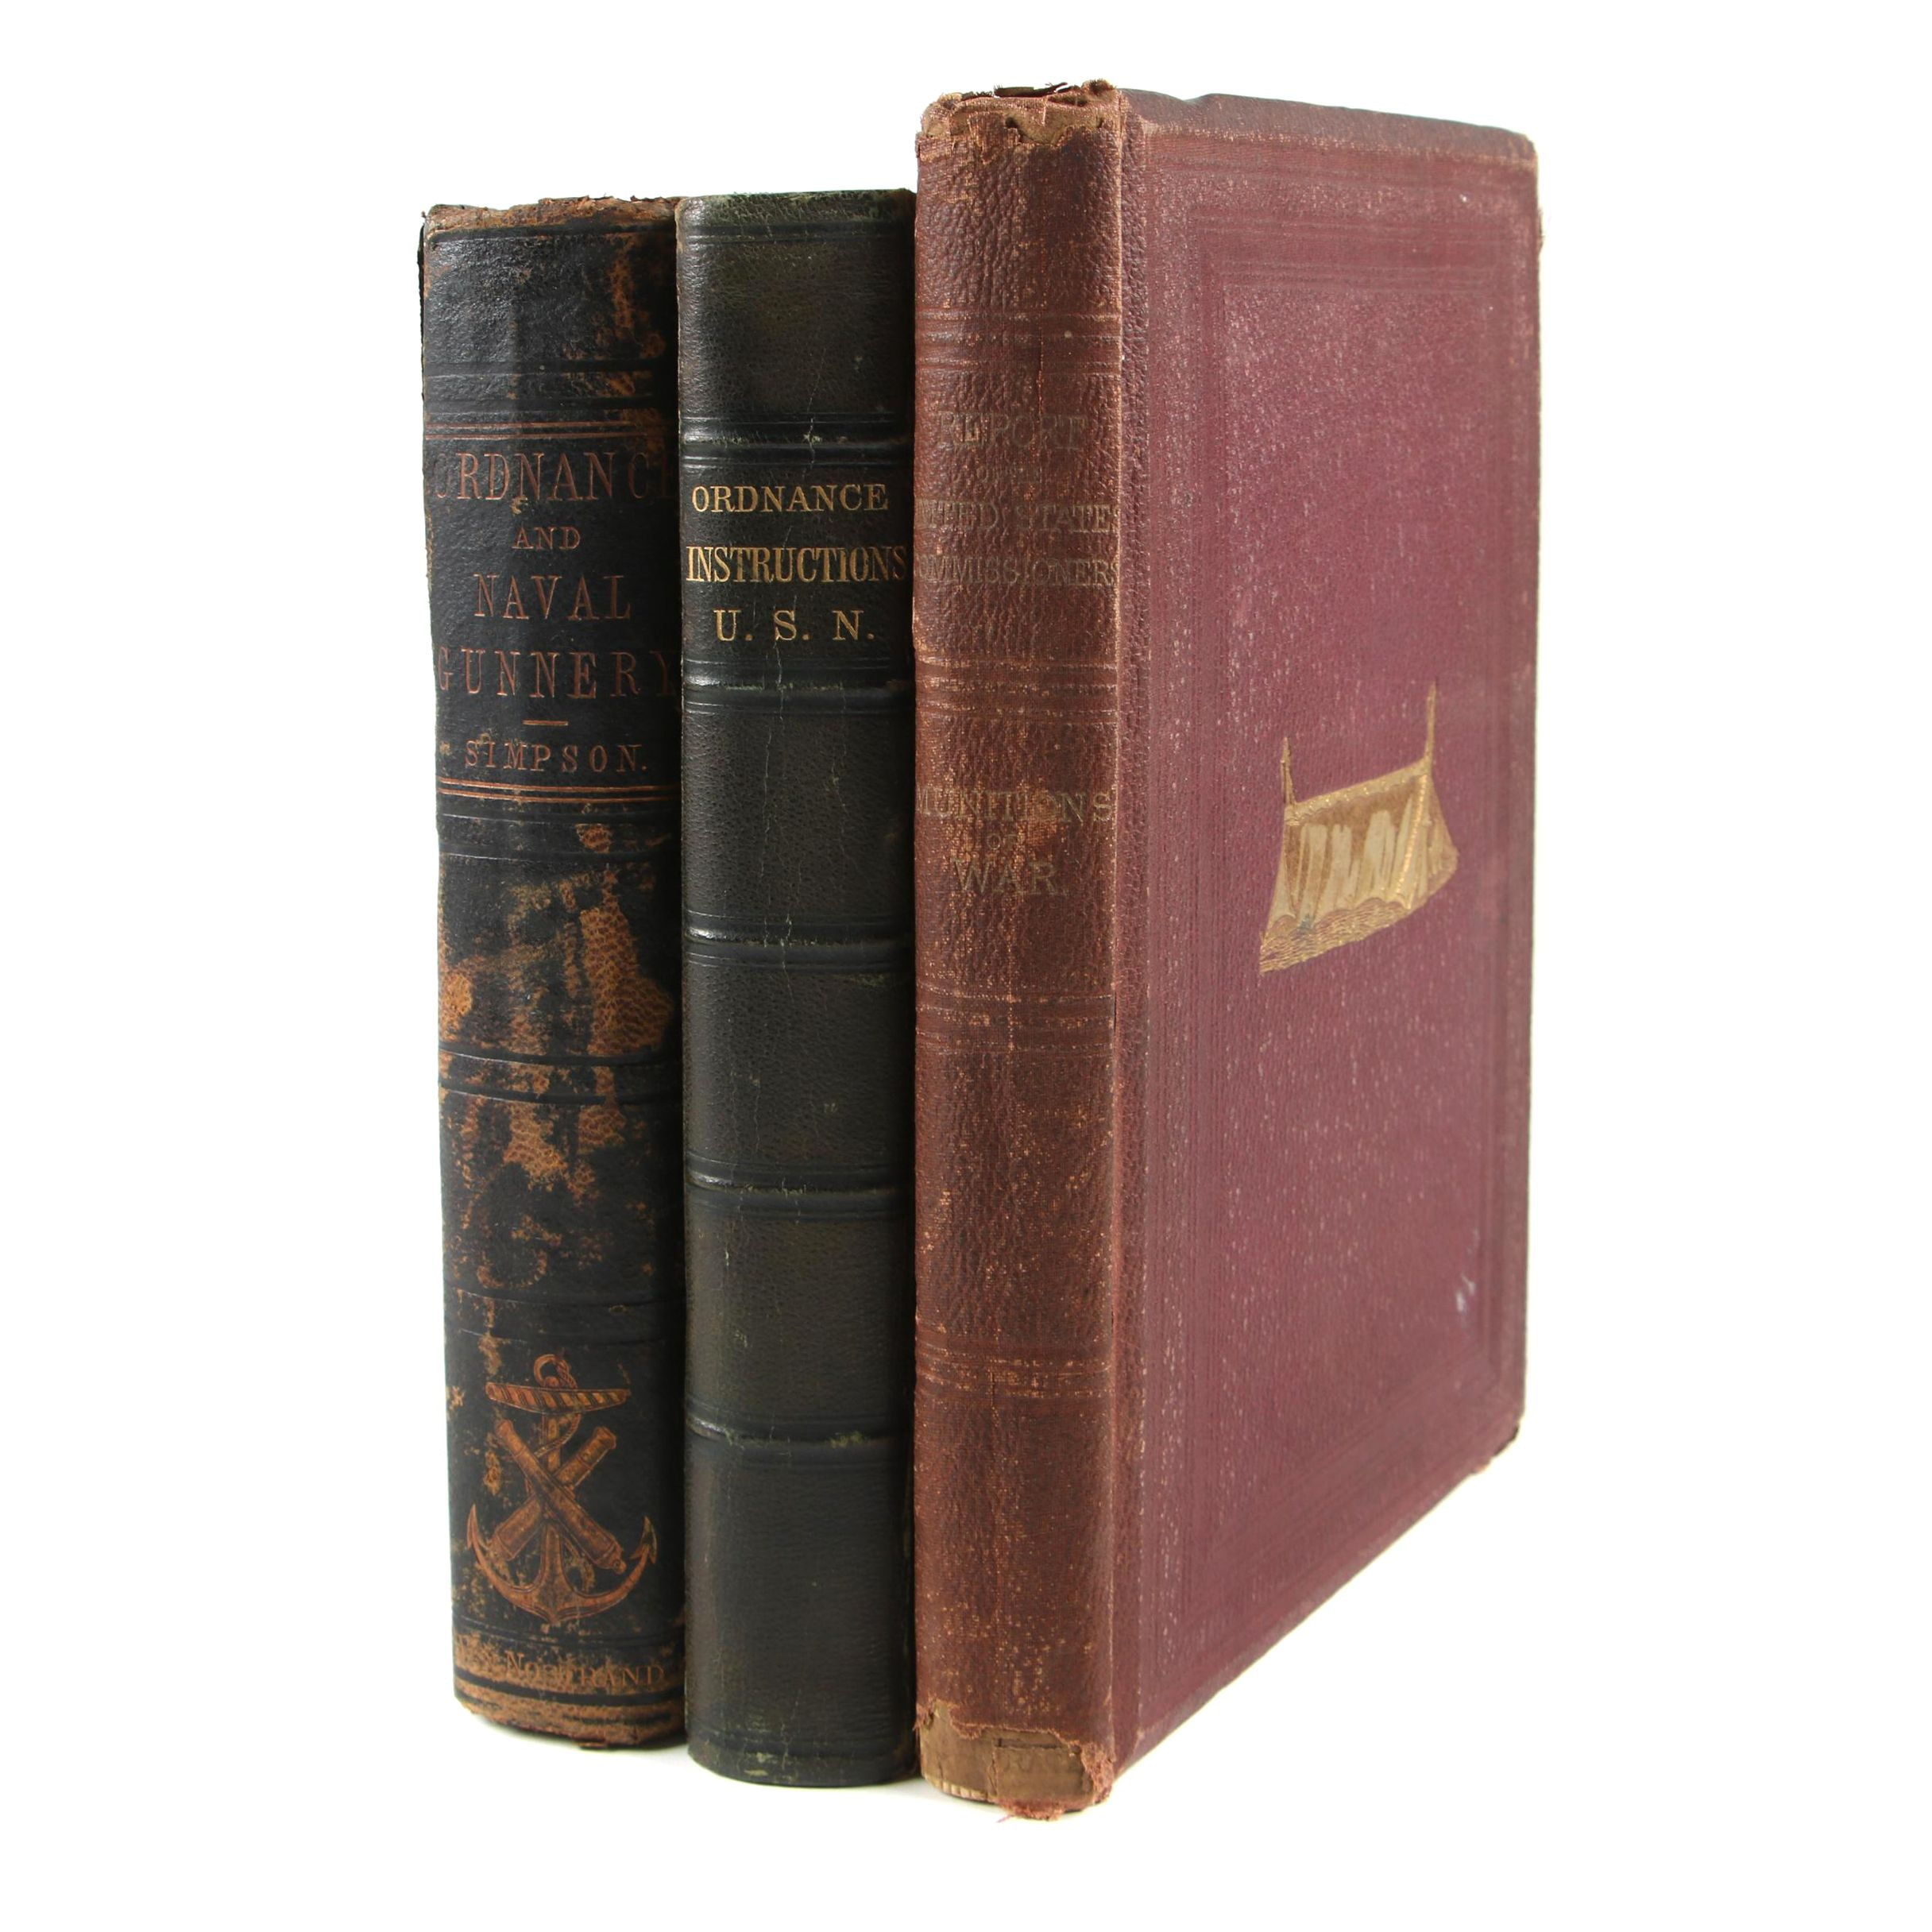 Antiquarian Military Munitions and Ordnance Books